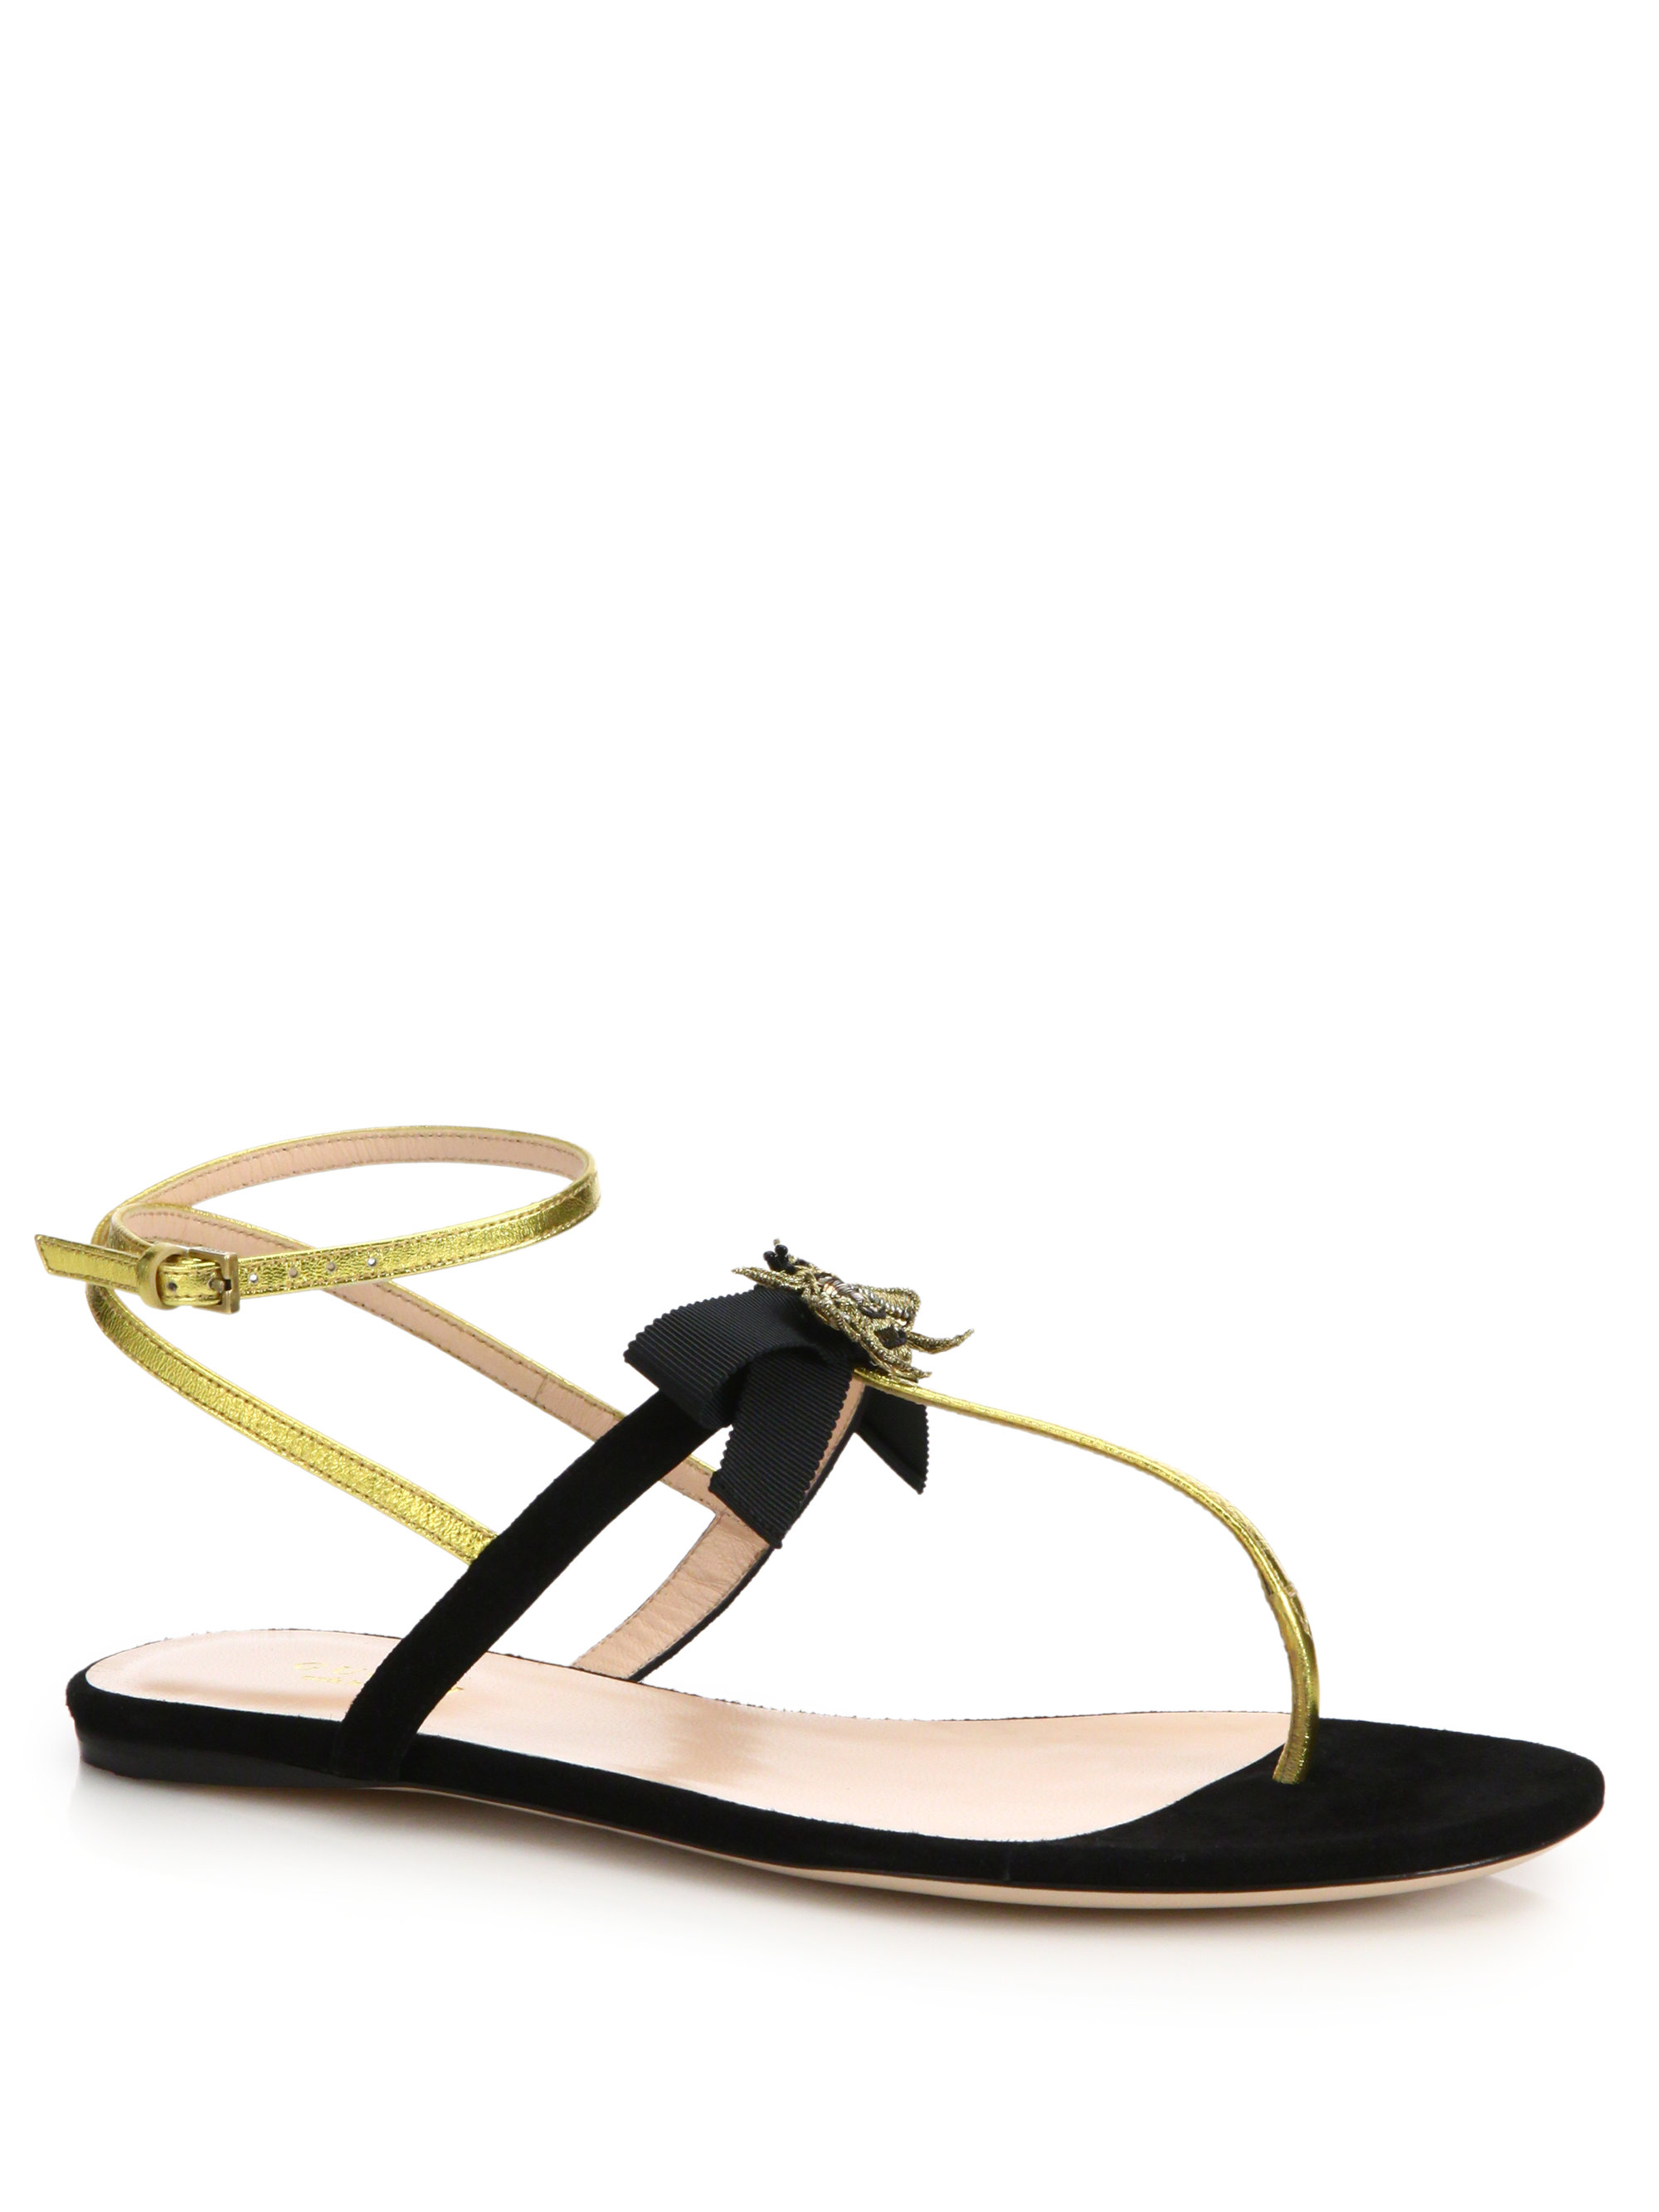 a4acfbfb295 Lyst - Gucci Moody Suede and Leather Sandals in Black